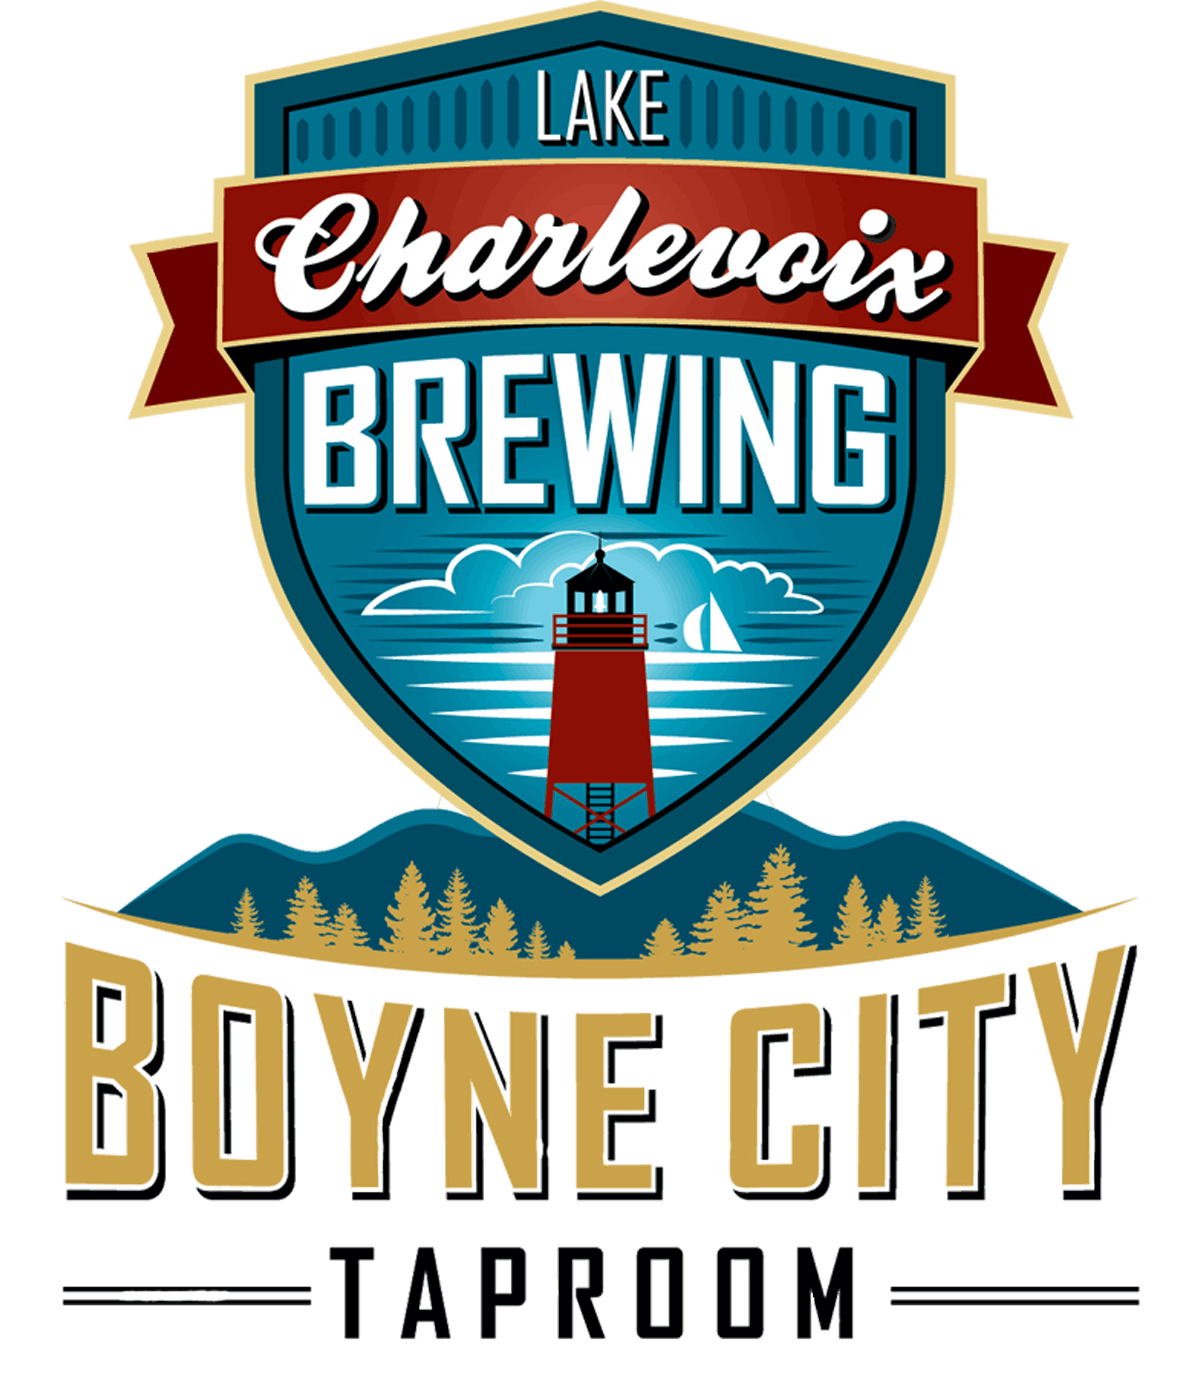 Beer — Boyne City Tap Room